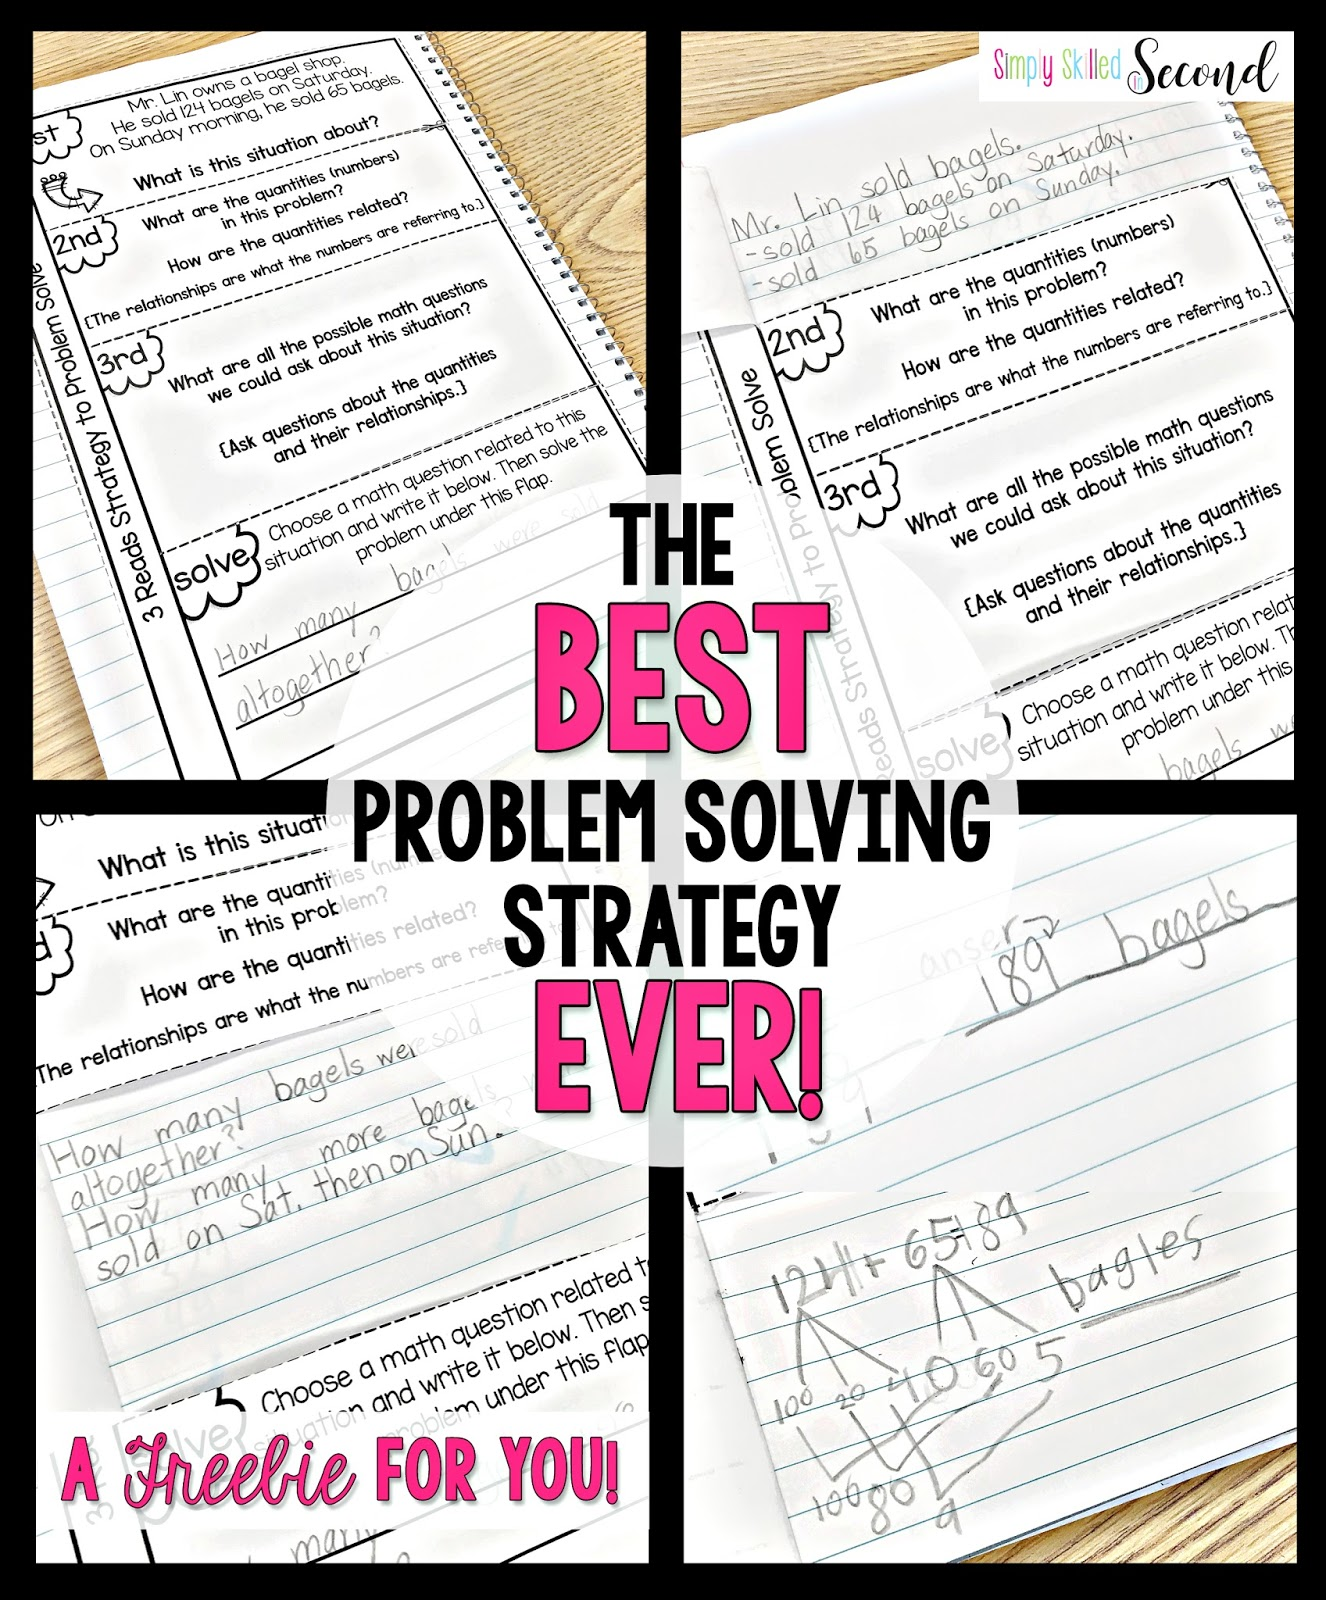 The Best Problem Solving Strategy Ever